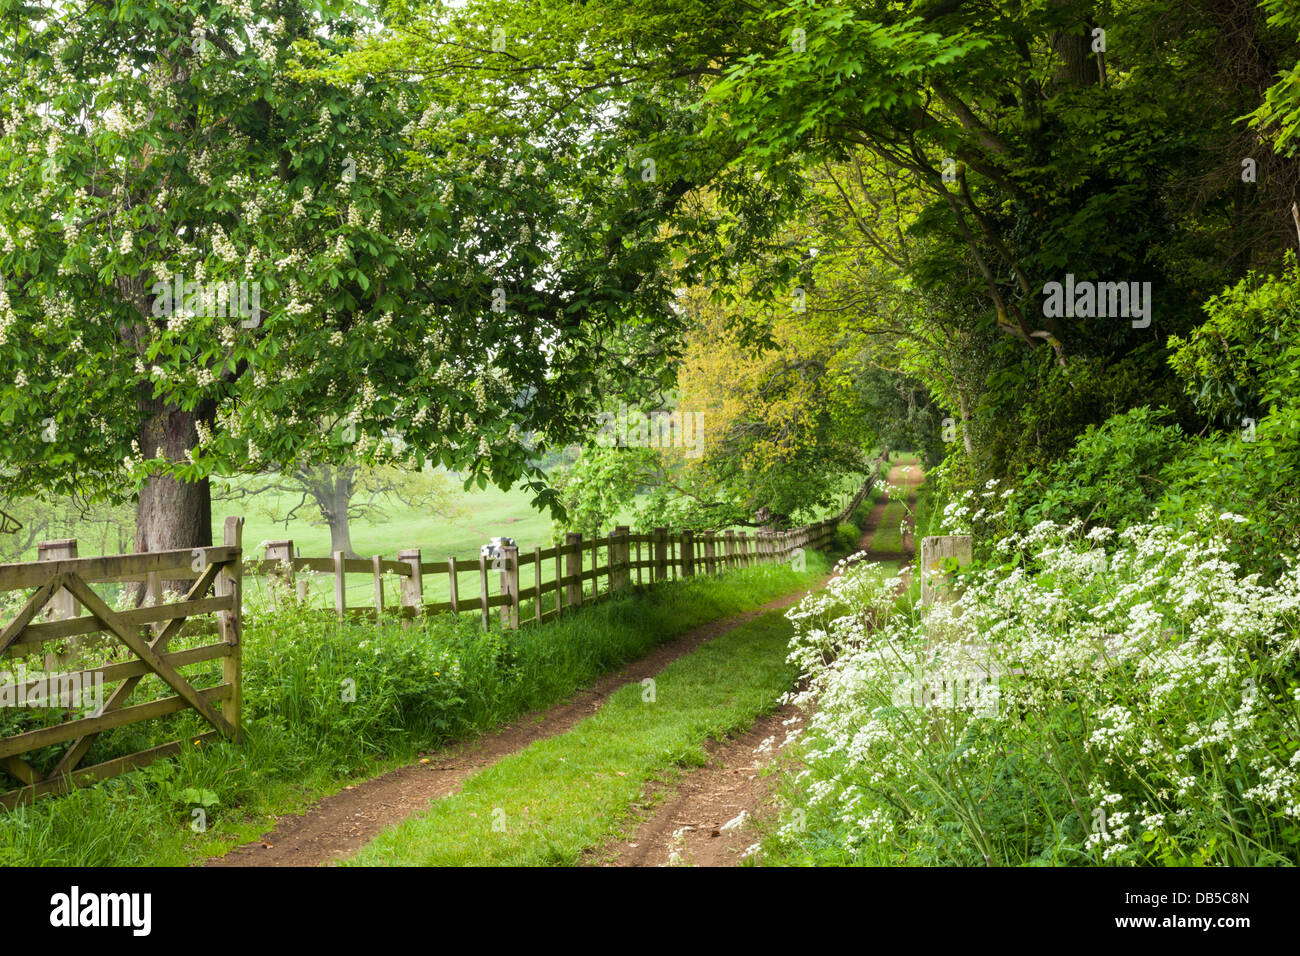 Former Barclays Chairman Bank Ring Fence Is Redundant And Should Be Scrapped besides Shoe Catalogue together with 3 Spring Latch together with Stock Photo Brick Edging Garden Grass Lawn 22587442 in addition 521539. on fence shopping